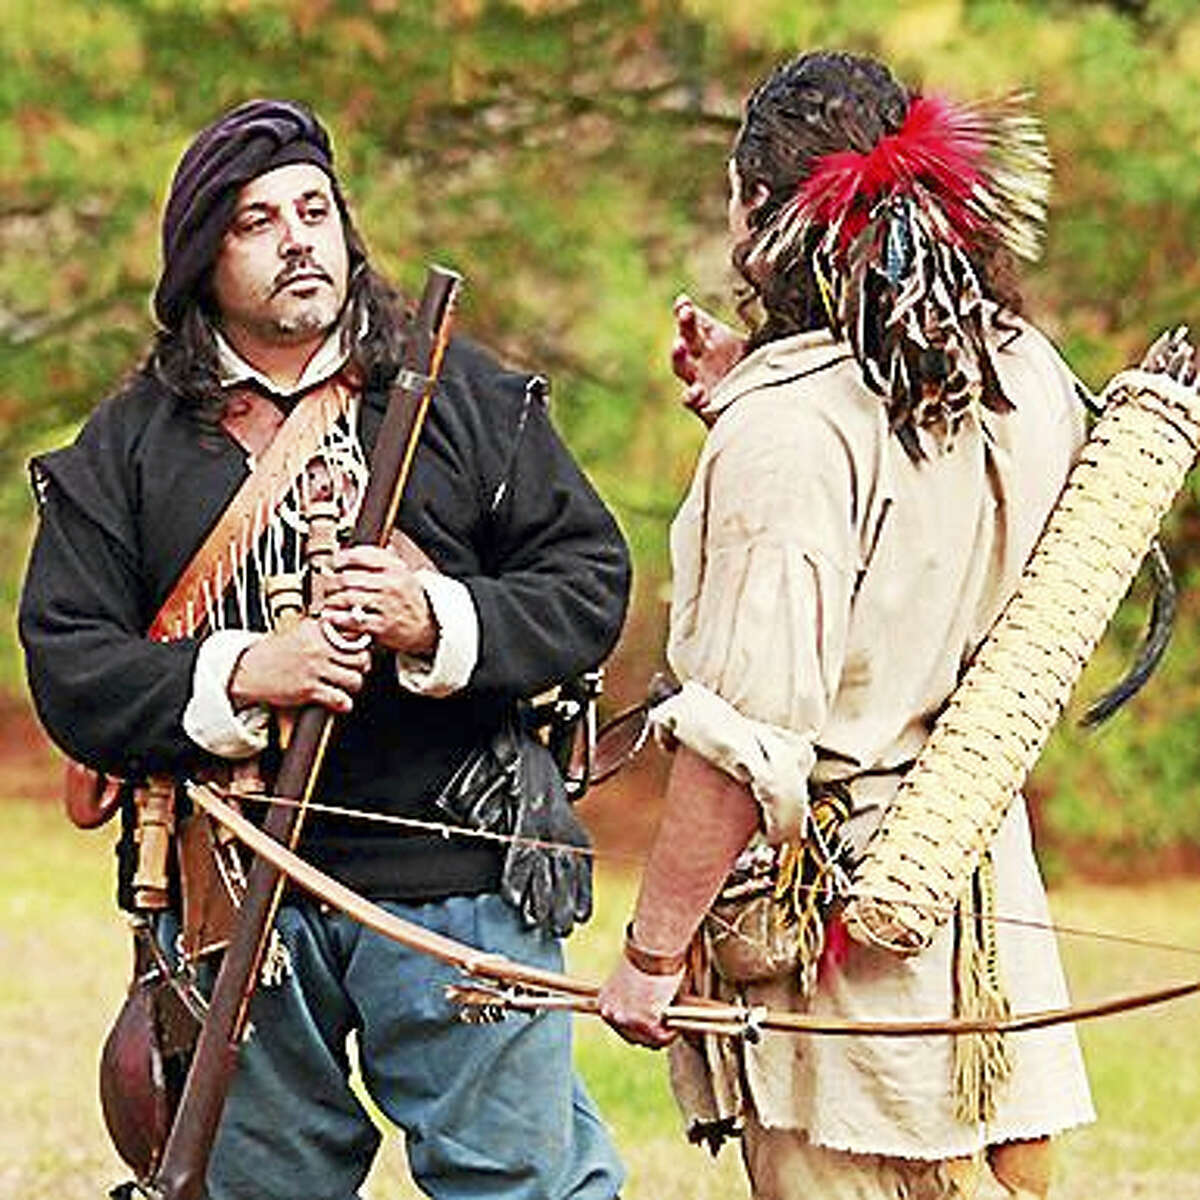 The encampment will feature sights from 17th-century life.